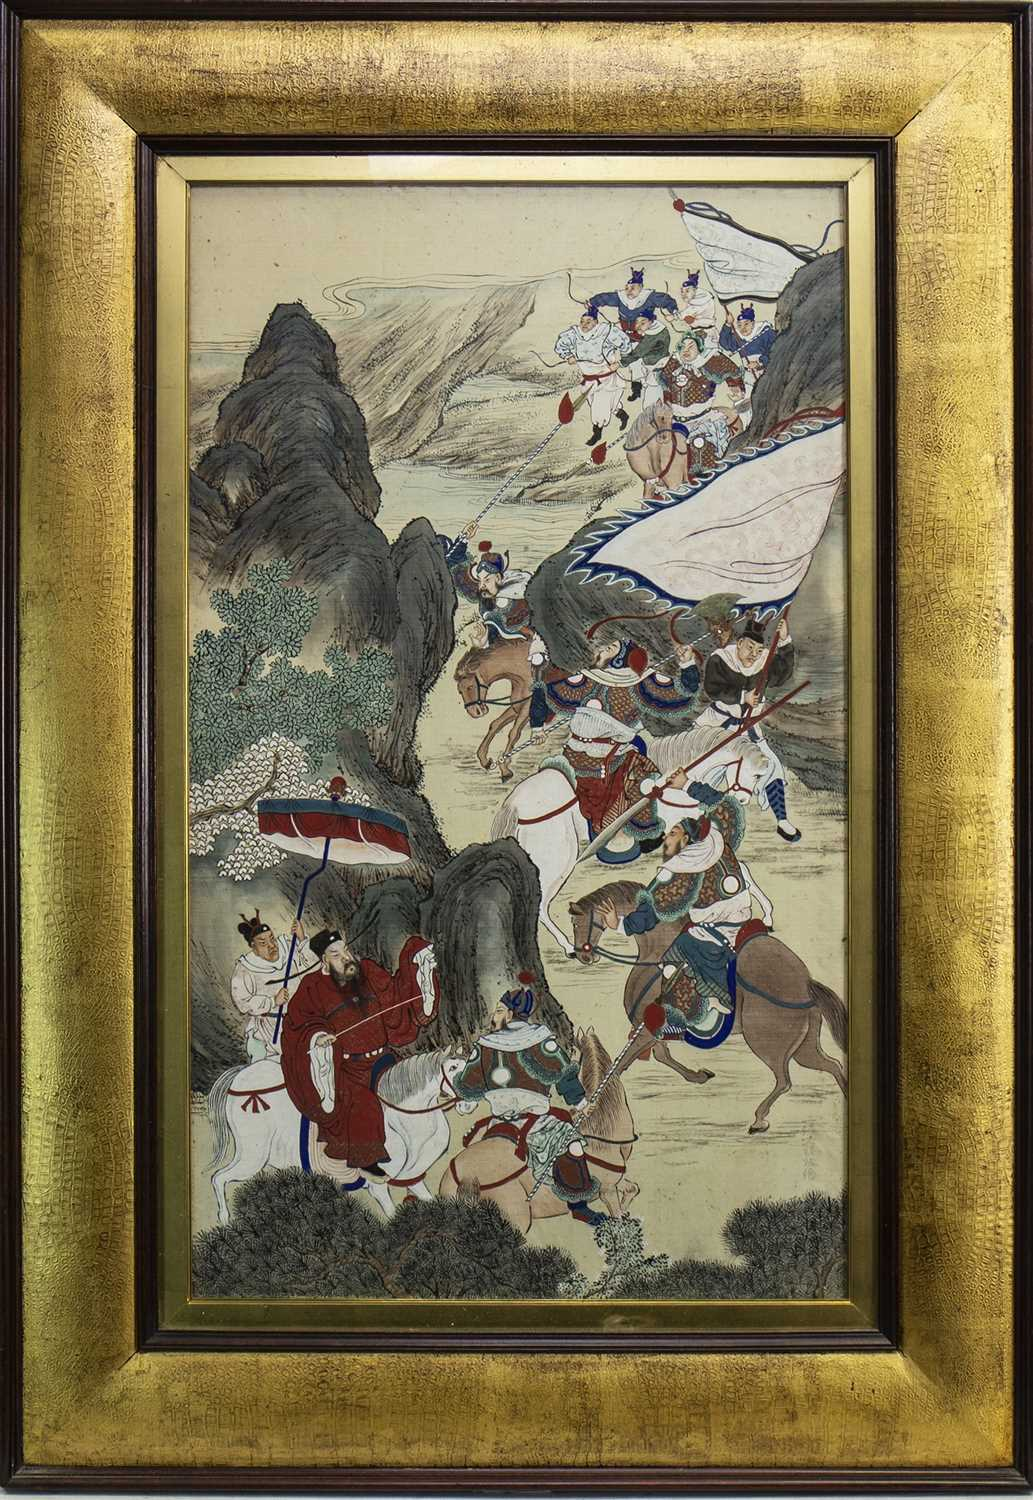 Lot 1005-A 20TH CENTURY CHINESE PAINTING ON SILK